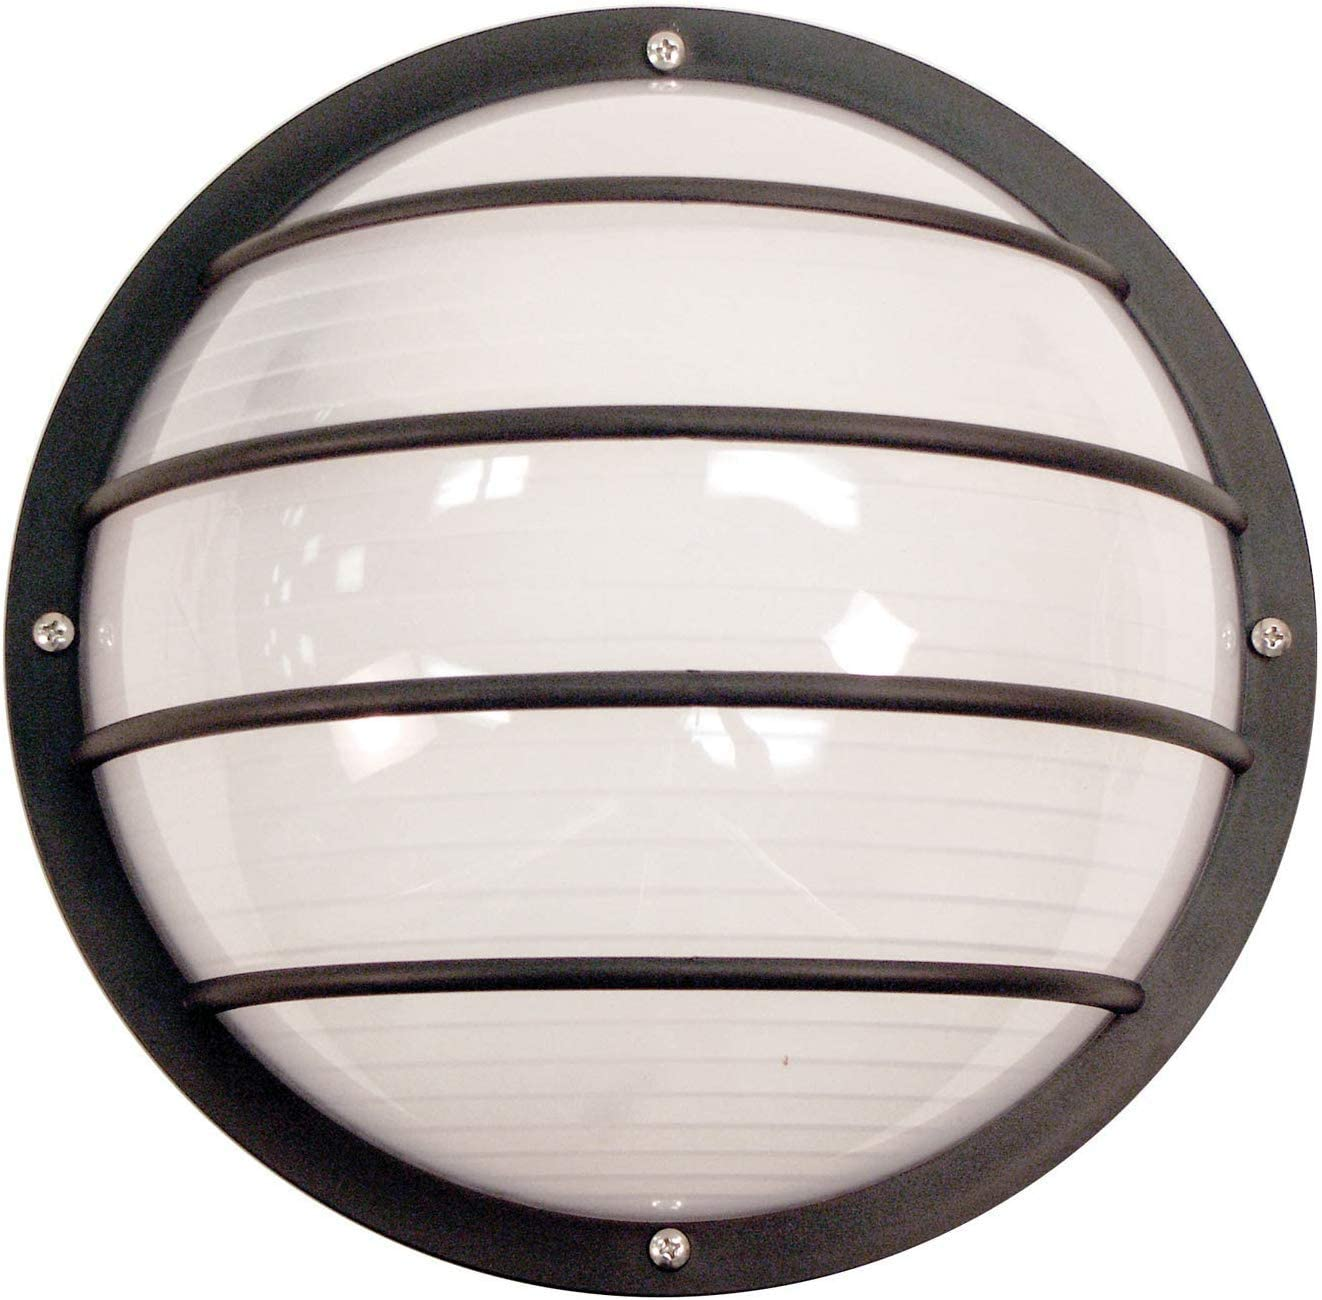 Solus S761WF-LE26C-BK Bulkhead Wall & Ceiling Mount Light with 4000K Energy Star LED Lamp, Durable & Frosted Polycarbonate Lens, Fade & Rust Resistant, UL Listed, 10 ¼